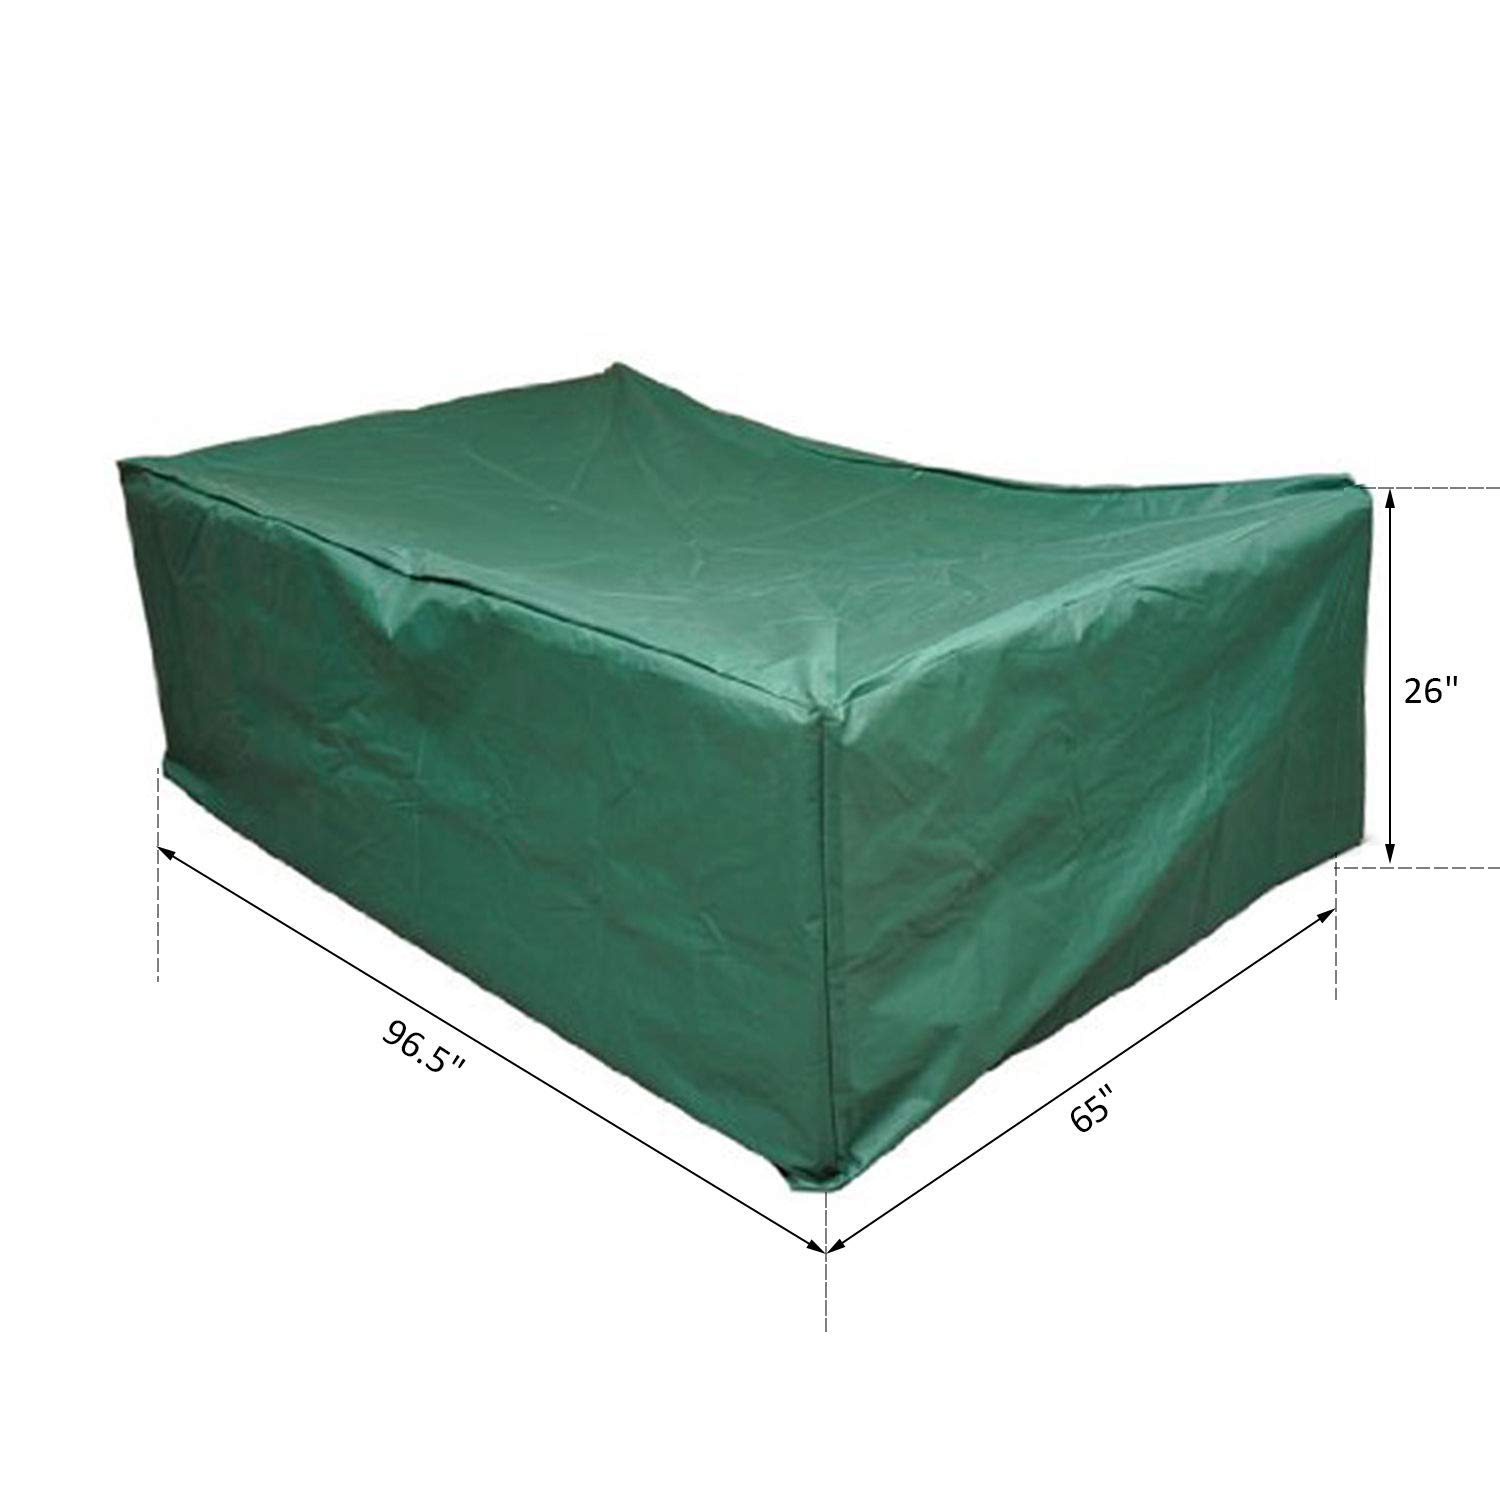 Outsunny Outdoor Sofa Sectional Furniture Set Cover, Green, 97-Inch x 65-Inch x 26-Inch